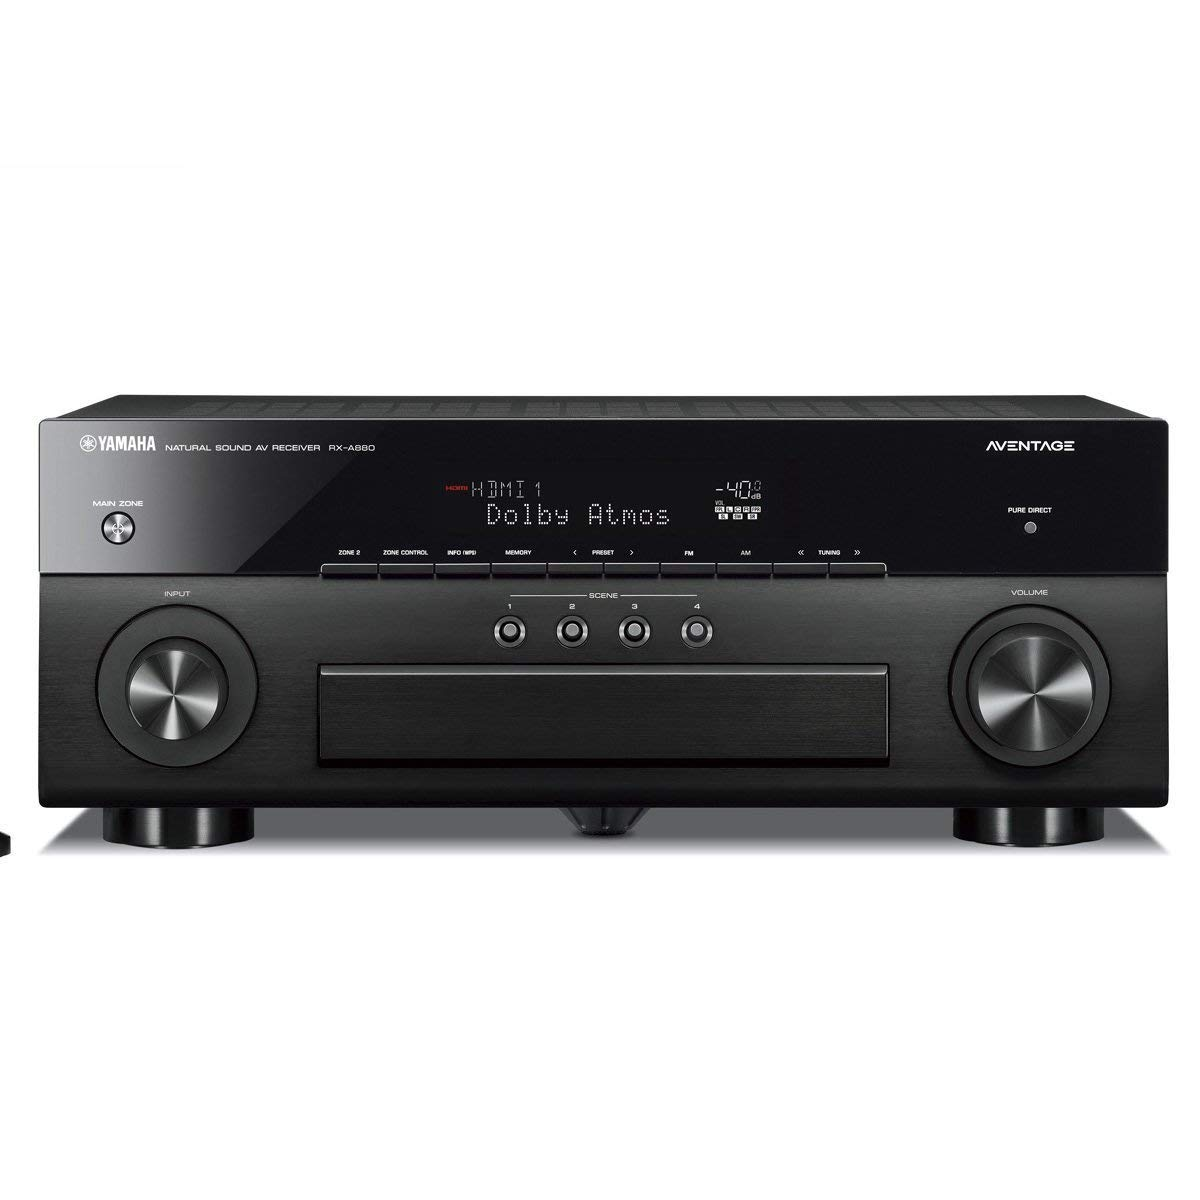 Yamaha RX-A880 Premium Audio & Video Component Receiver - Black (Renewed)